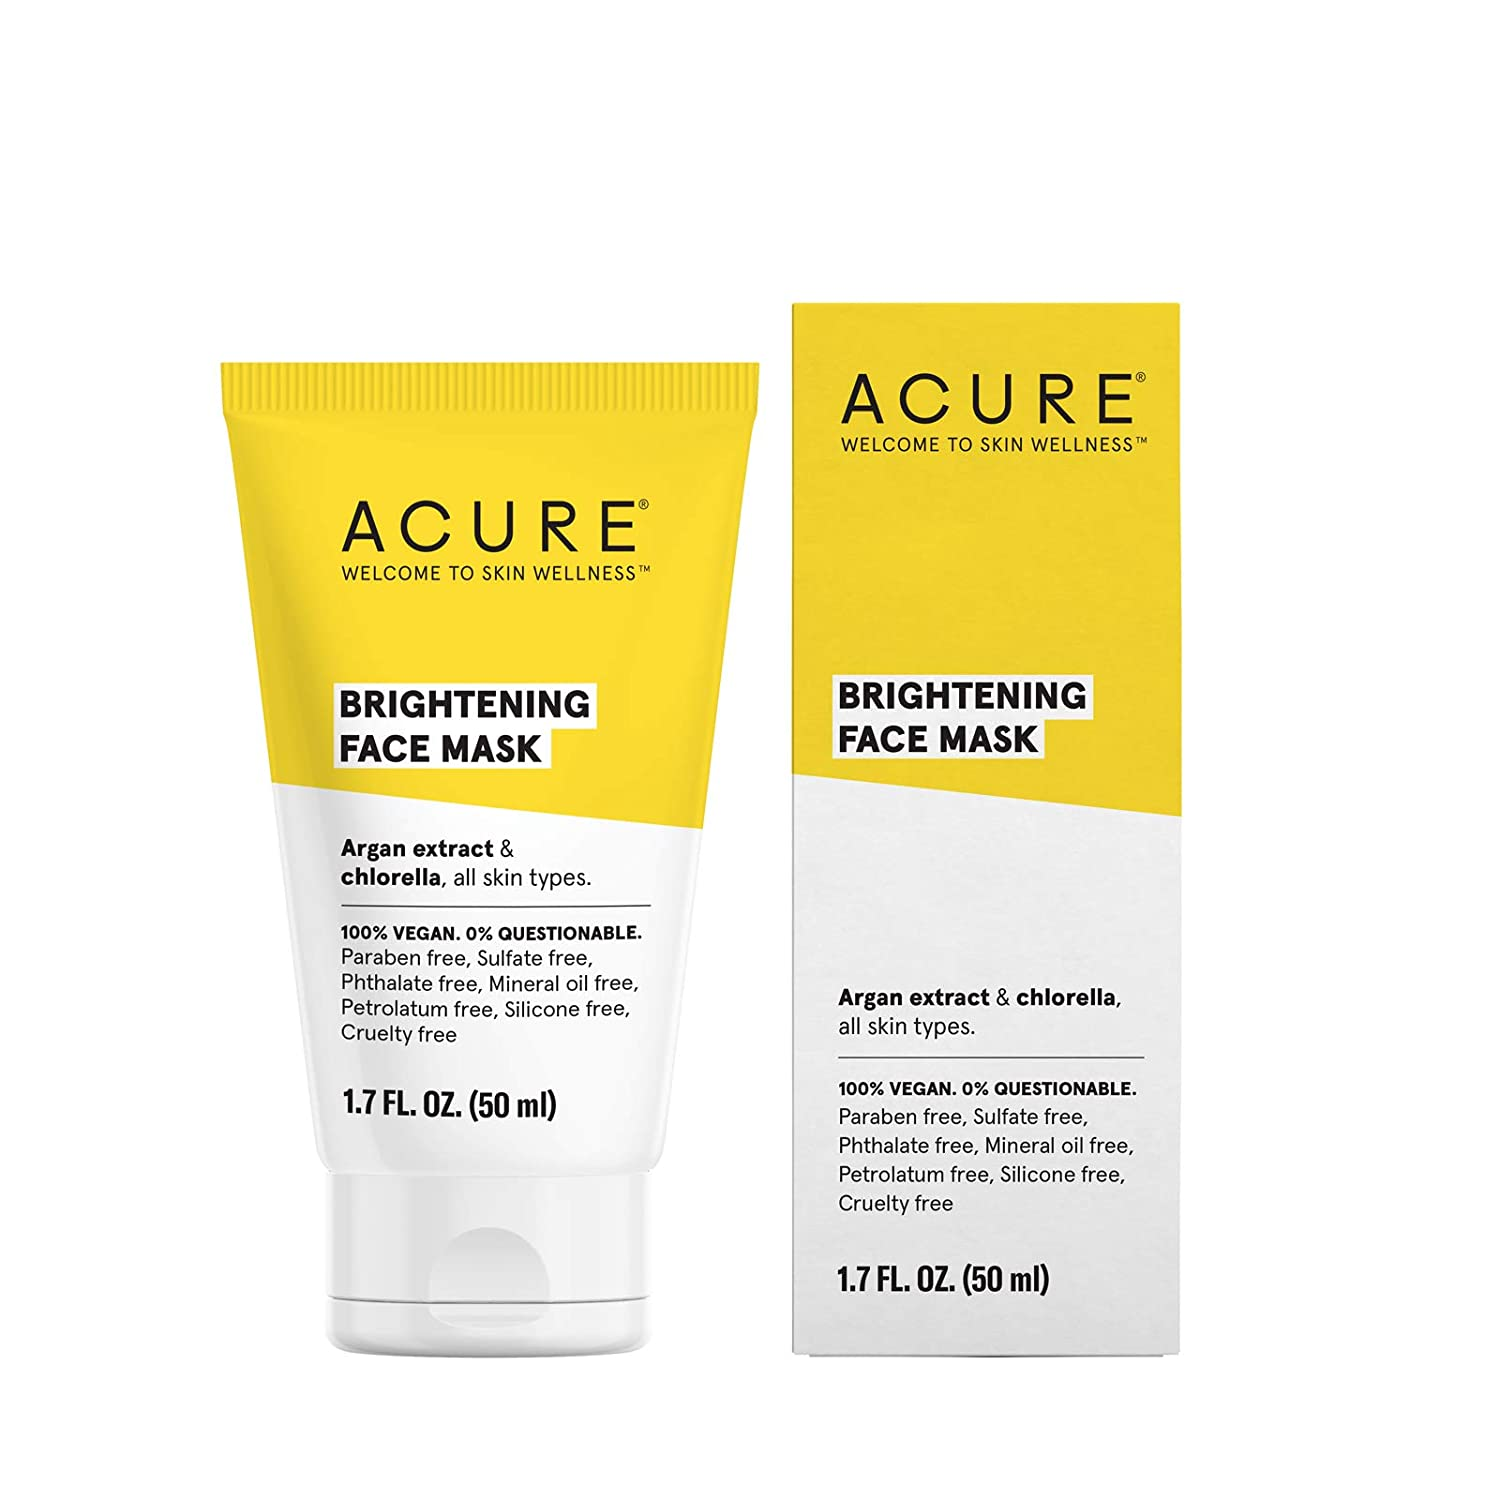 ACURE Brilliantly Brightening Face Mask, 1.75oz ET1032